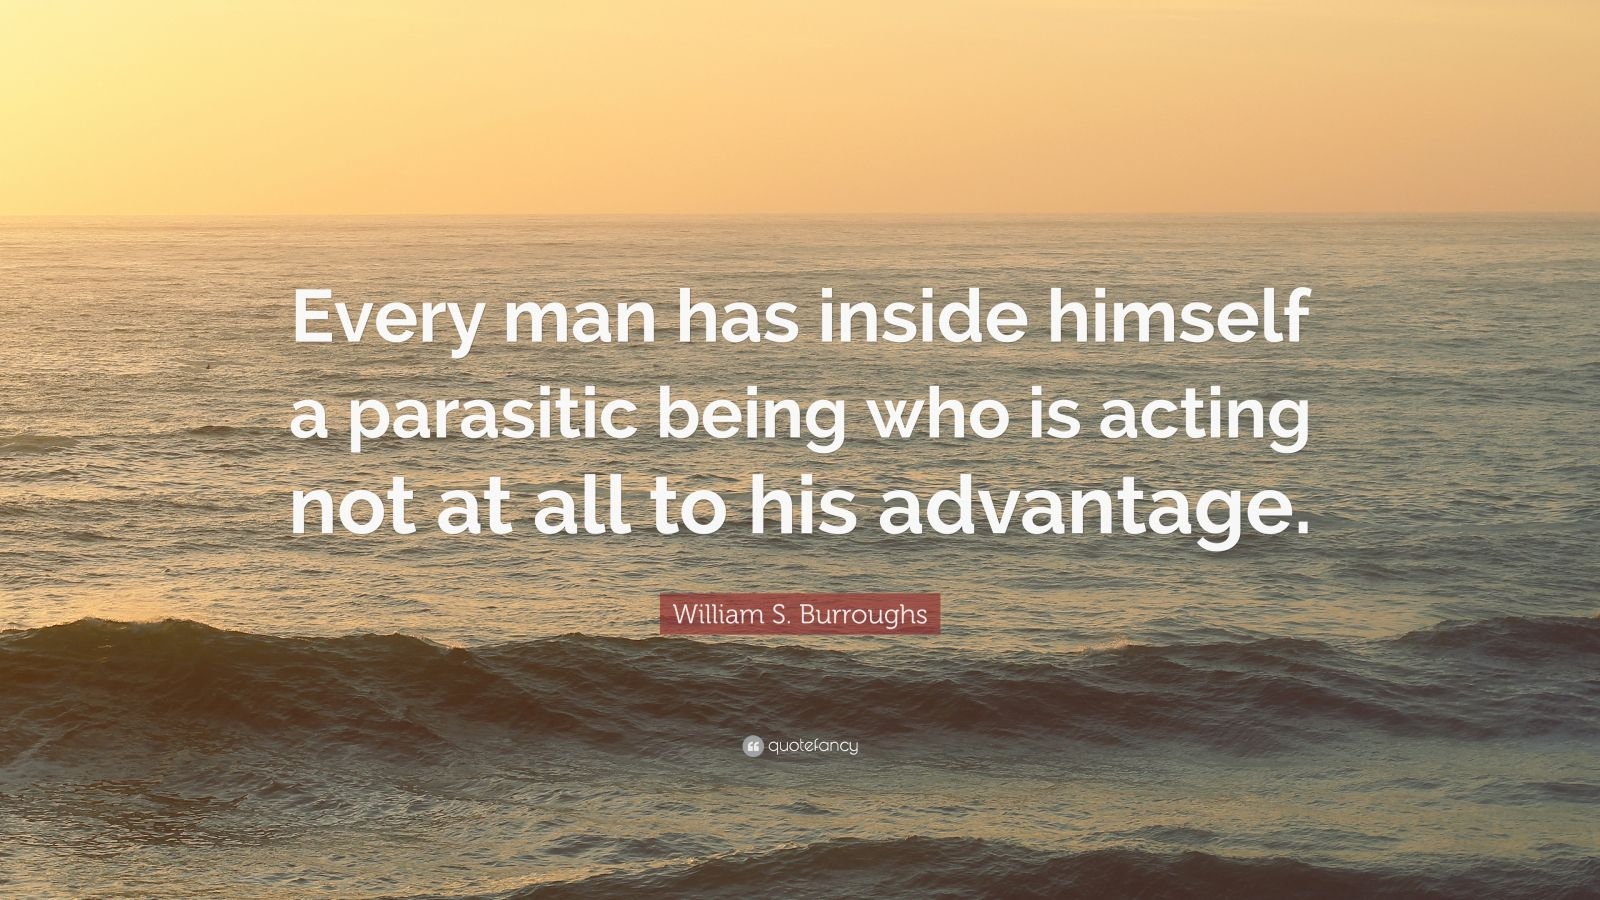 """William S. Burroughs Quote: """"Every man has inside himself a parasitic being who is acting not at all to his advantage."""""""